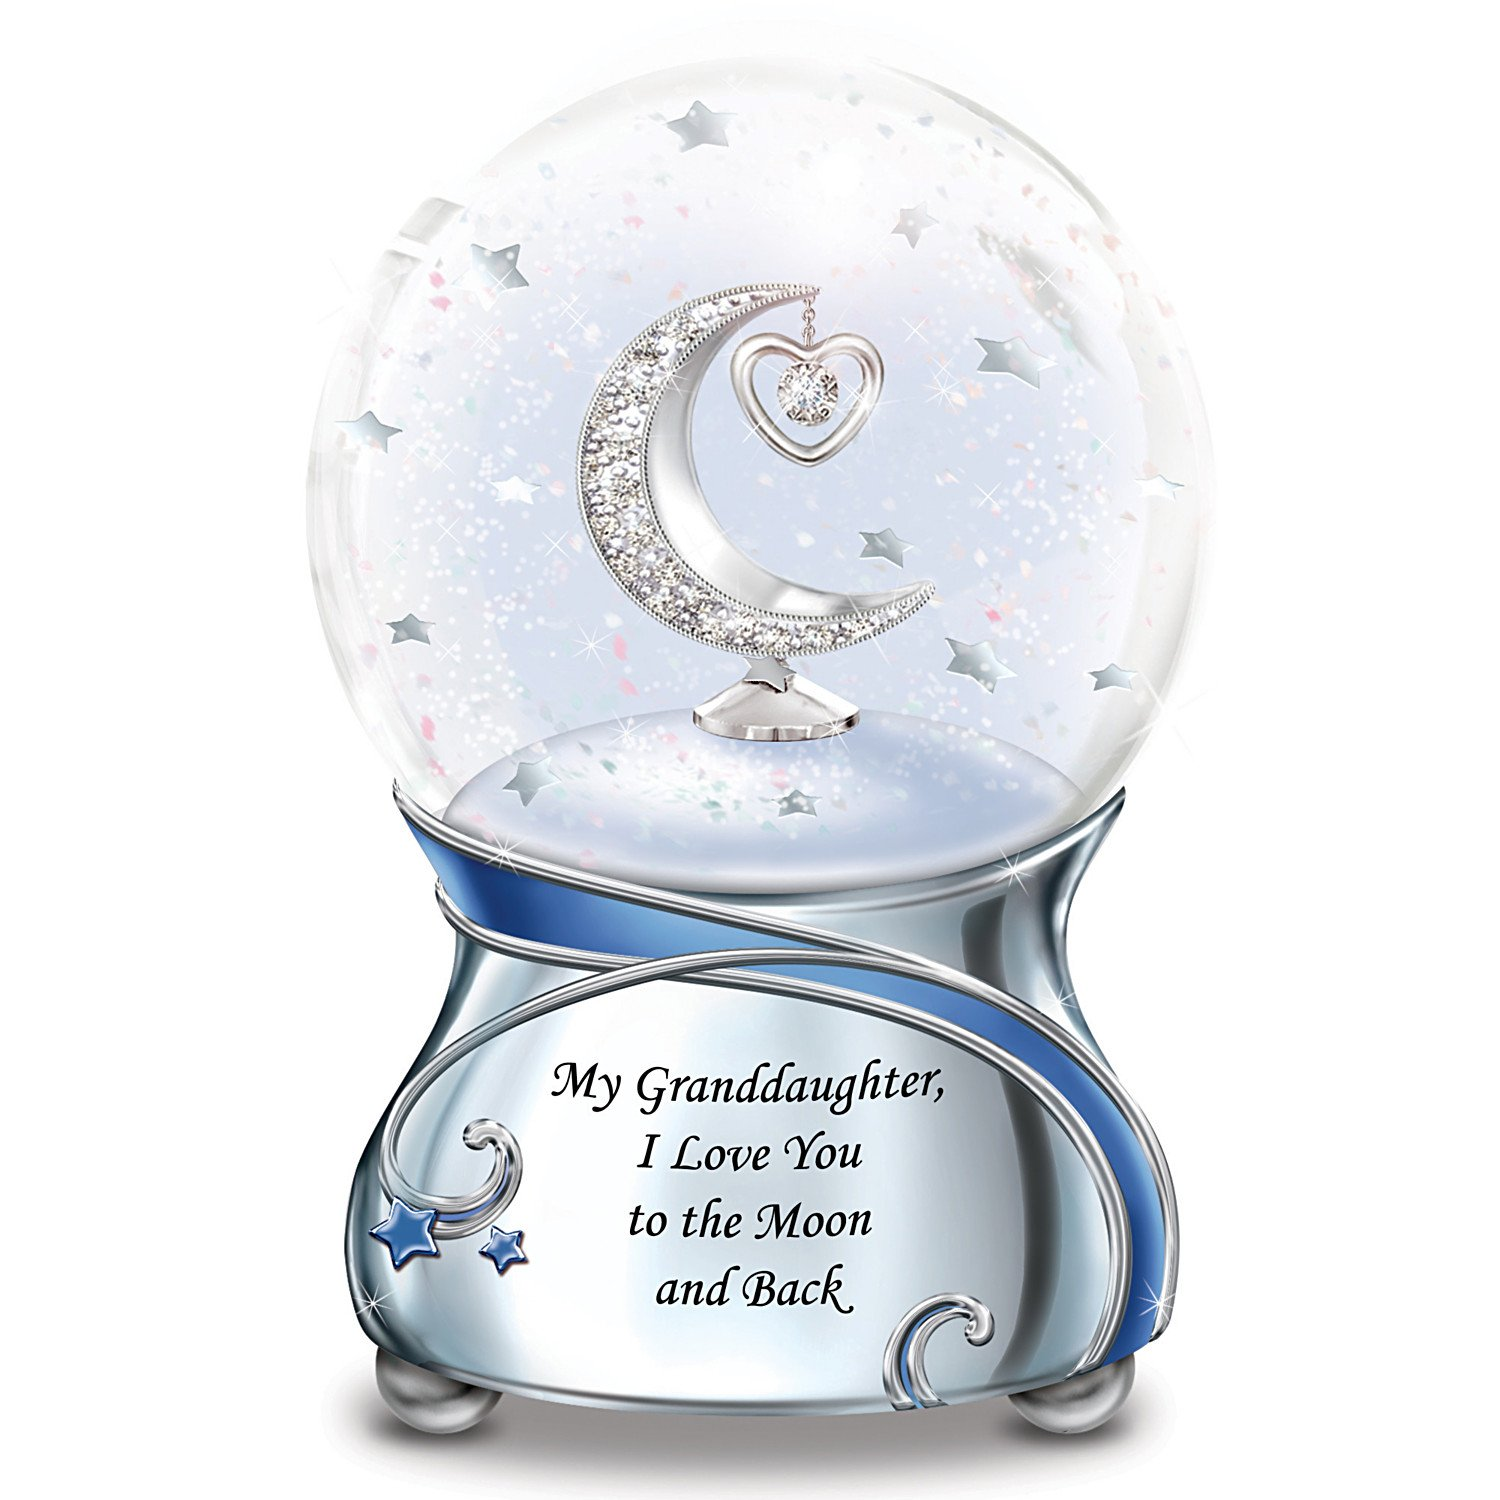 Snowglobe With Swarovski Crystal For Granddaughter Plays Always In My Heart by The Bradford Exchange